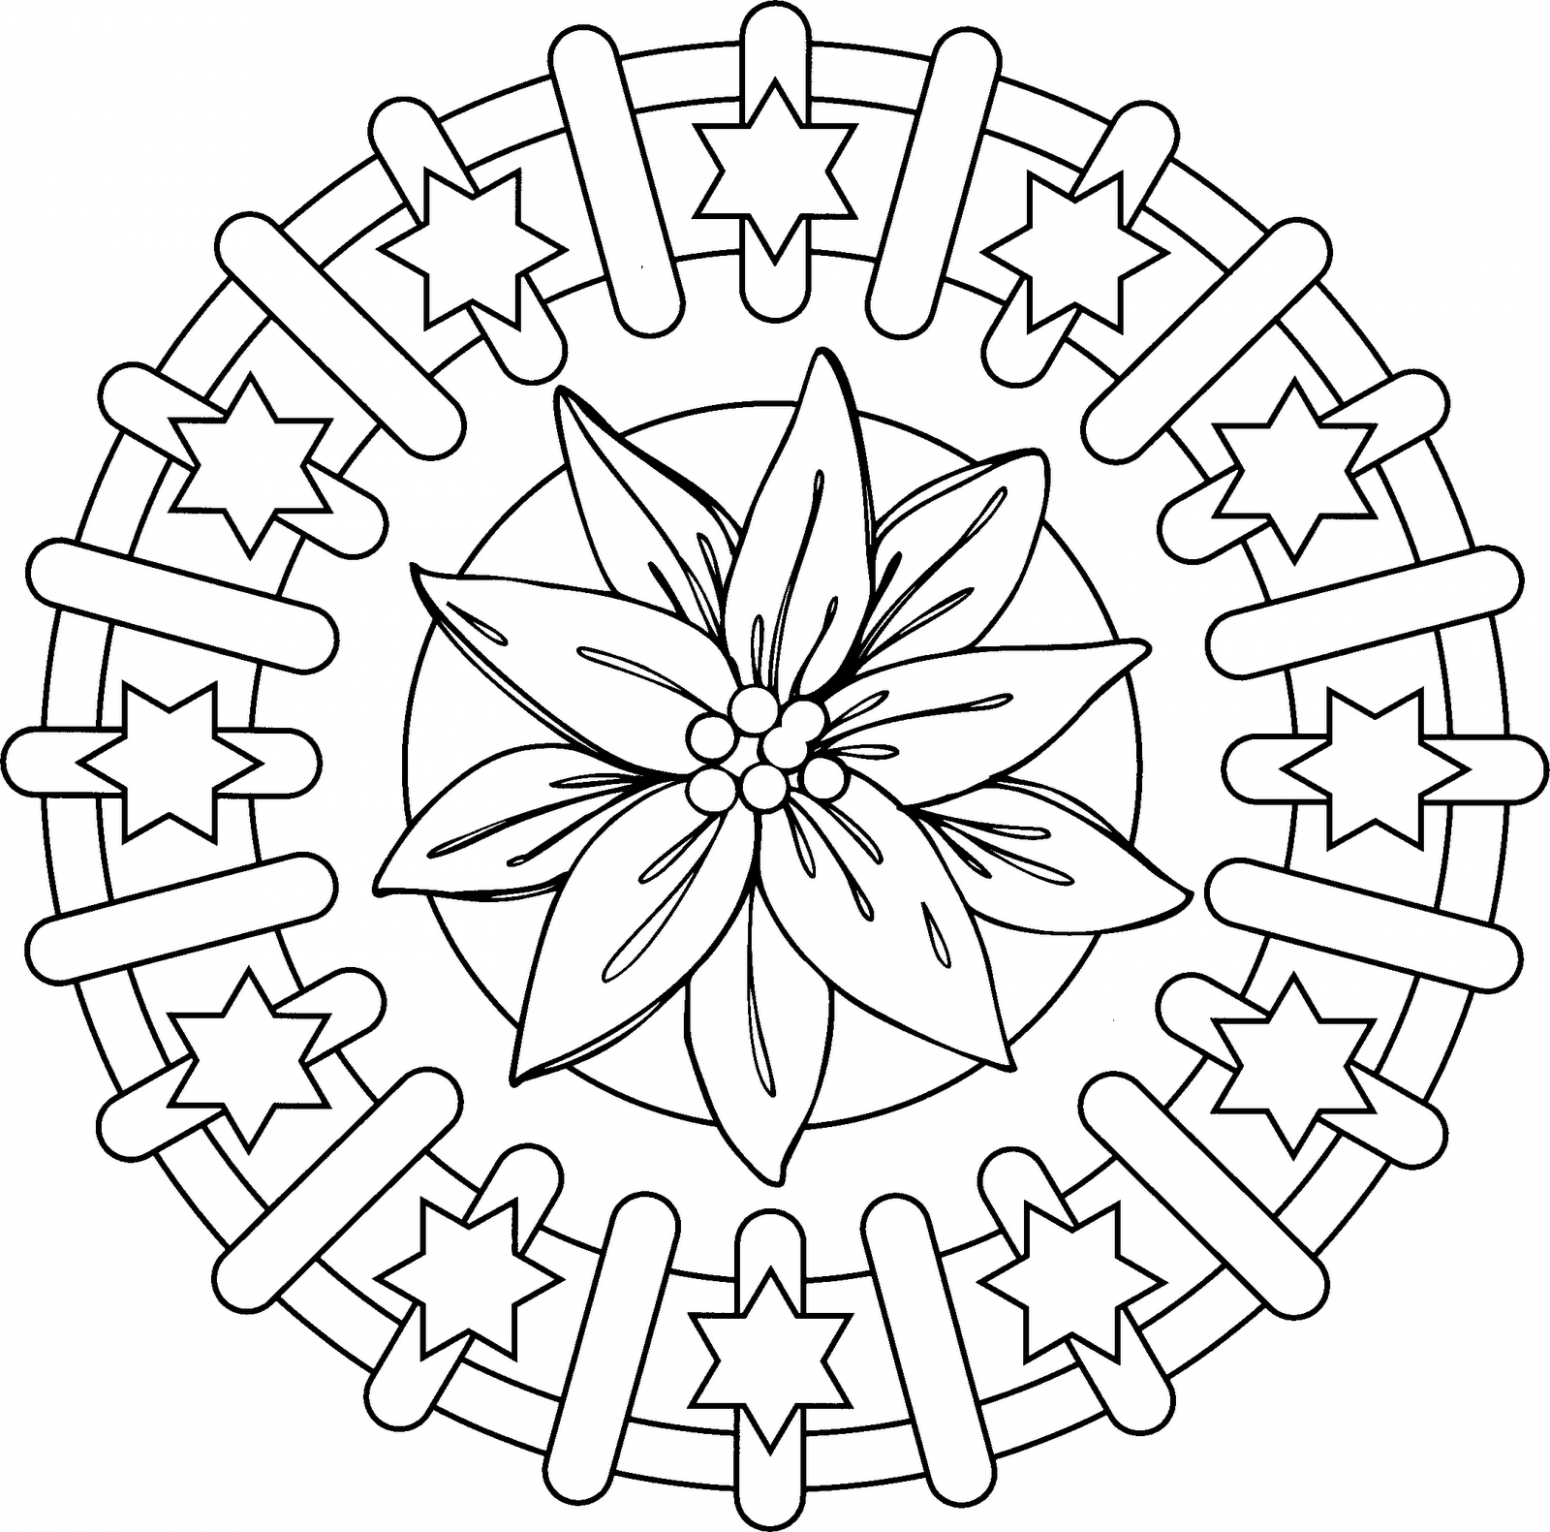 free printable mandalas to color for adults mandala from free coloring books for adults 29 malas free mandalas printable for adults to color